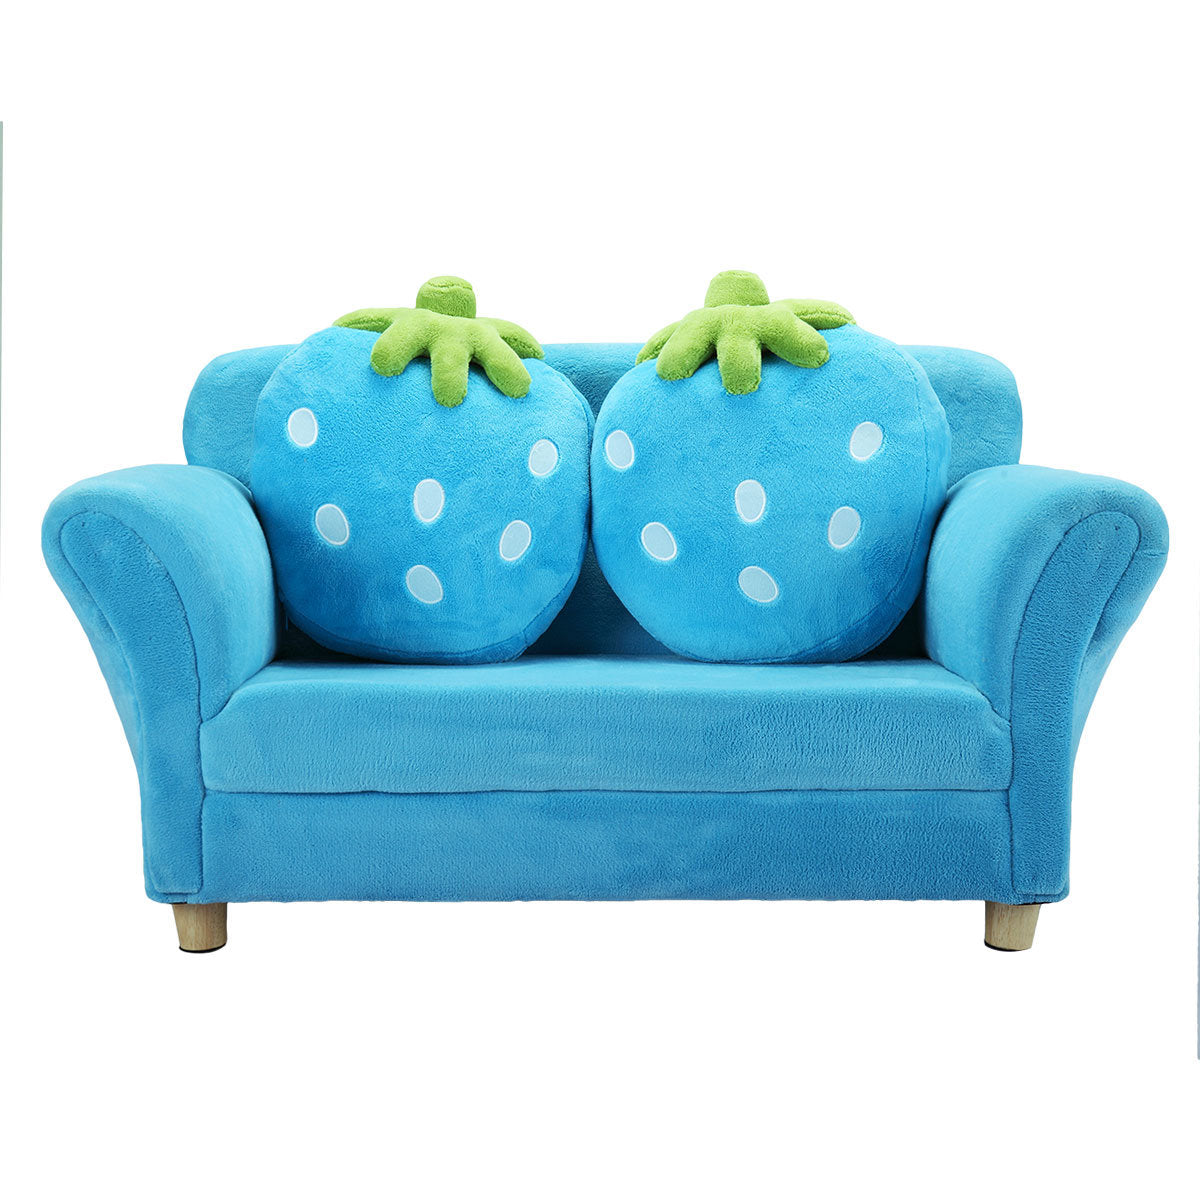 Kids sofa couch, with 2 Cute Strawberry Pillows, Armrest Chair Double Seats, Wooden Frame and Coral Fleece Surface